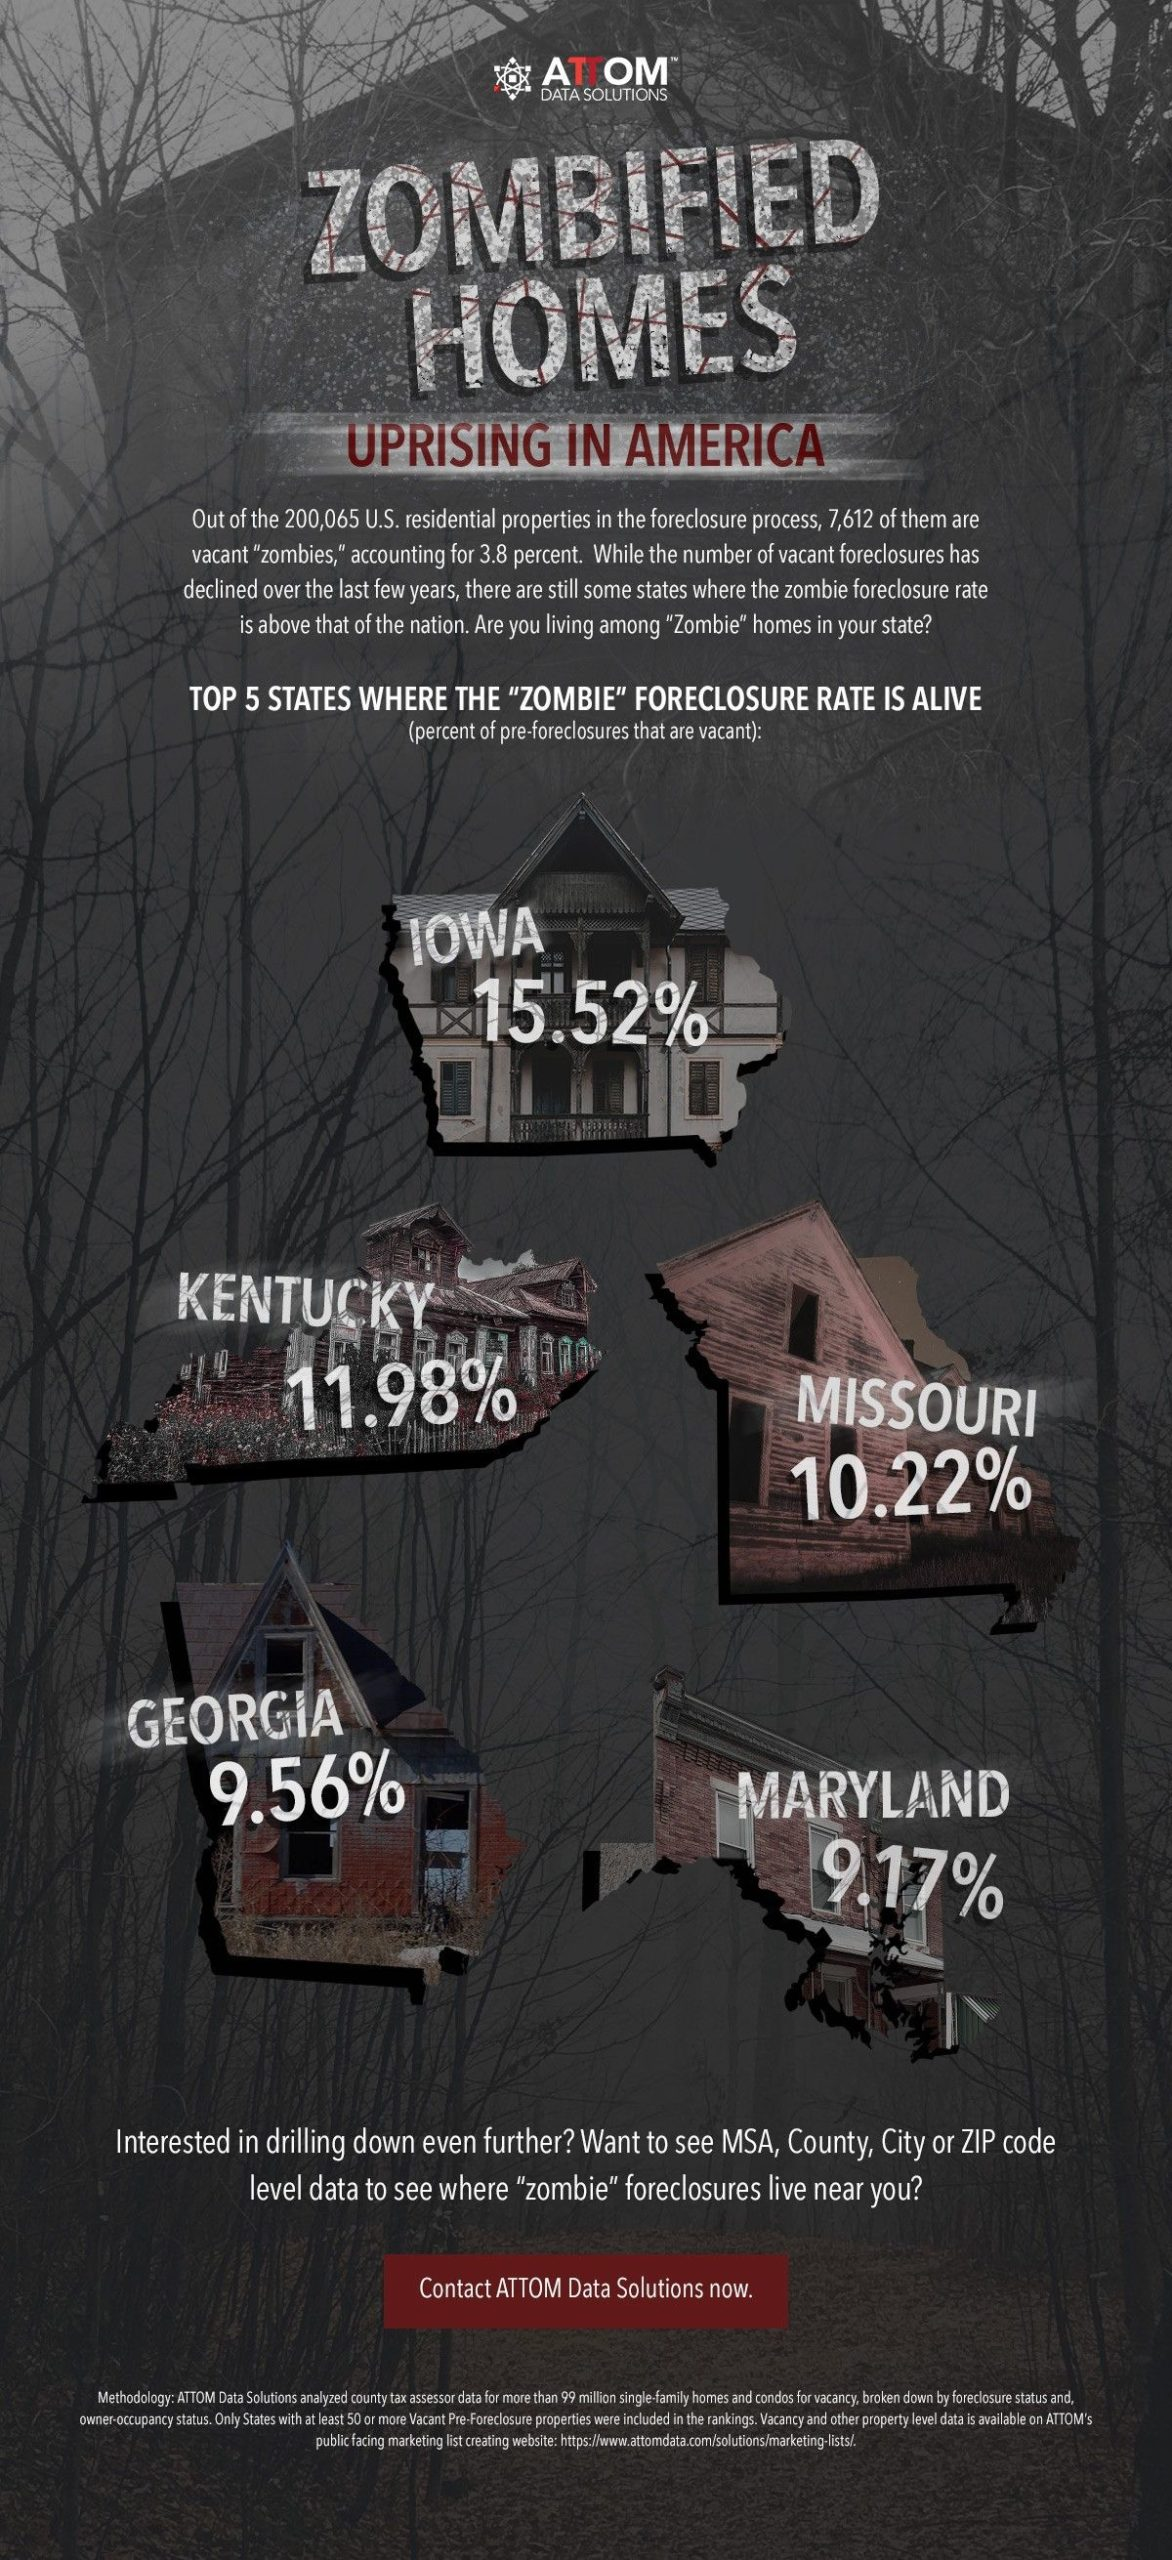 Zombified-Homes-Infographic-scaled.jpg